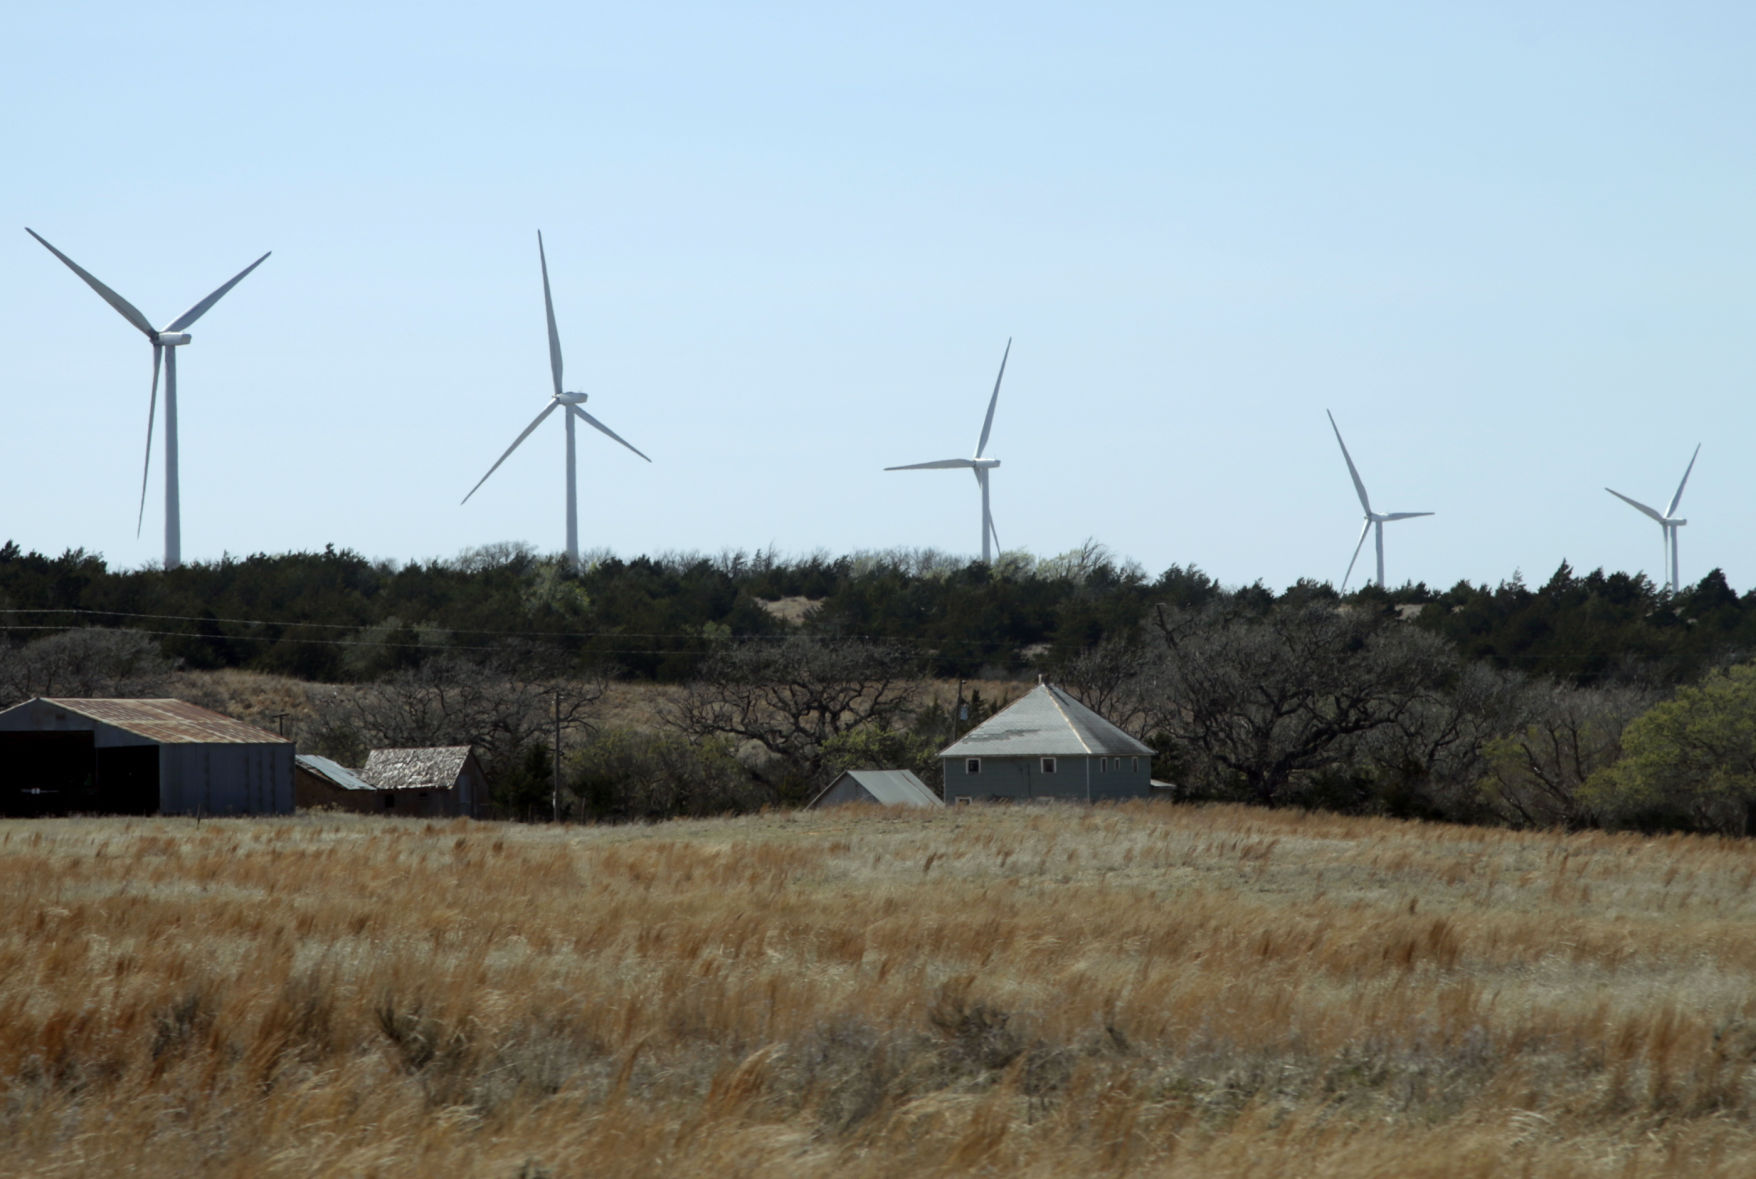 American Electric Power to Invest $4.5 Billion in Wind Farm Project